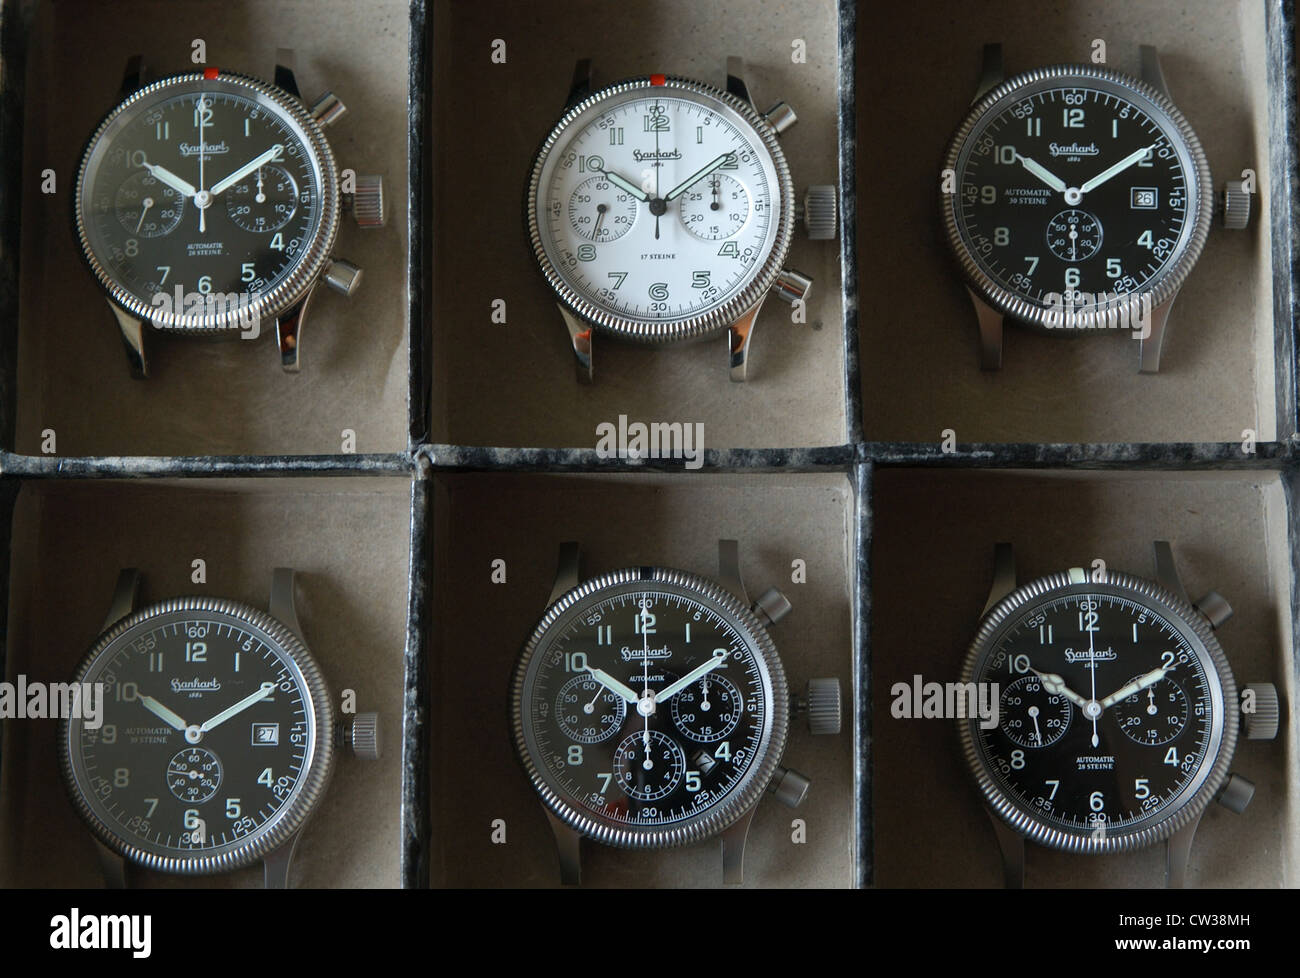 Hanhart watch factory in the Black Forest - Stock Image